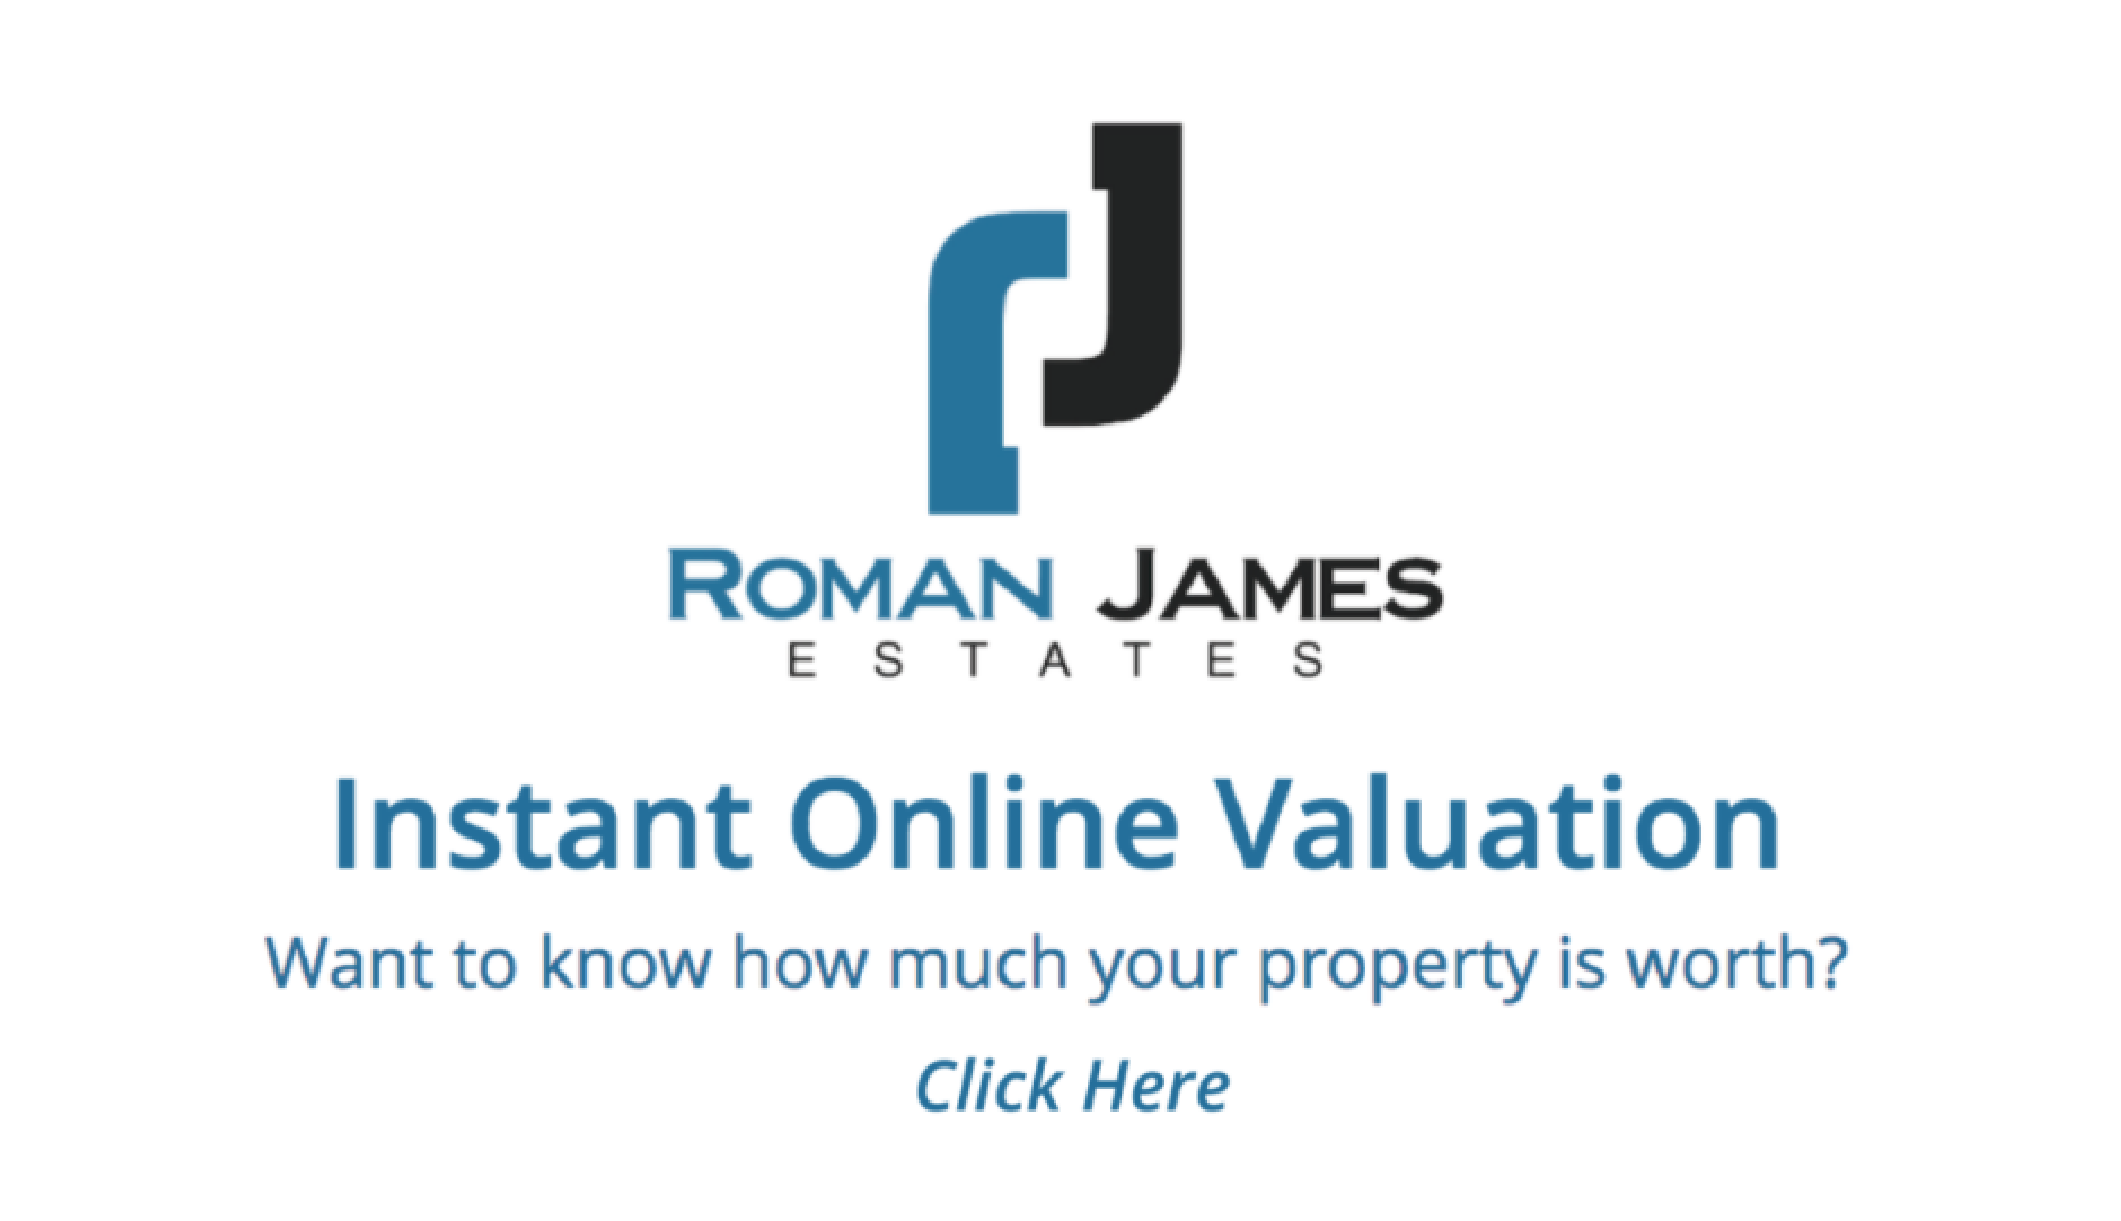 How much is your home worth? Instant online valuation